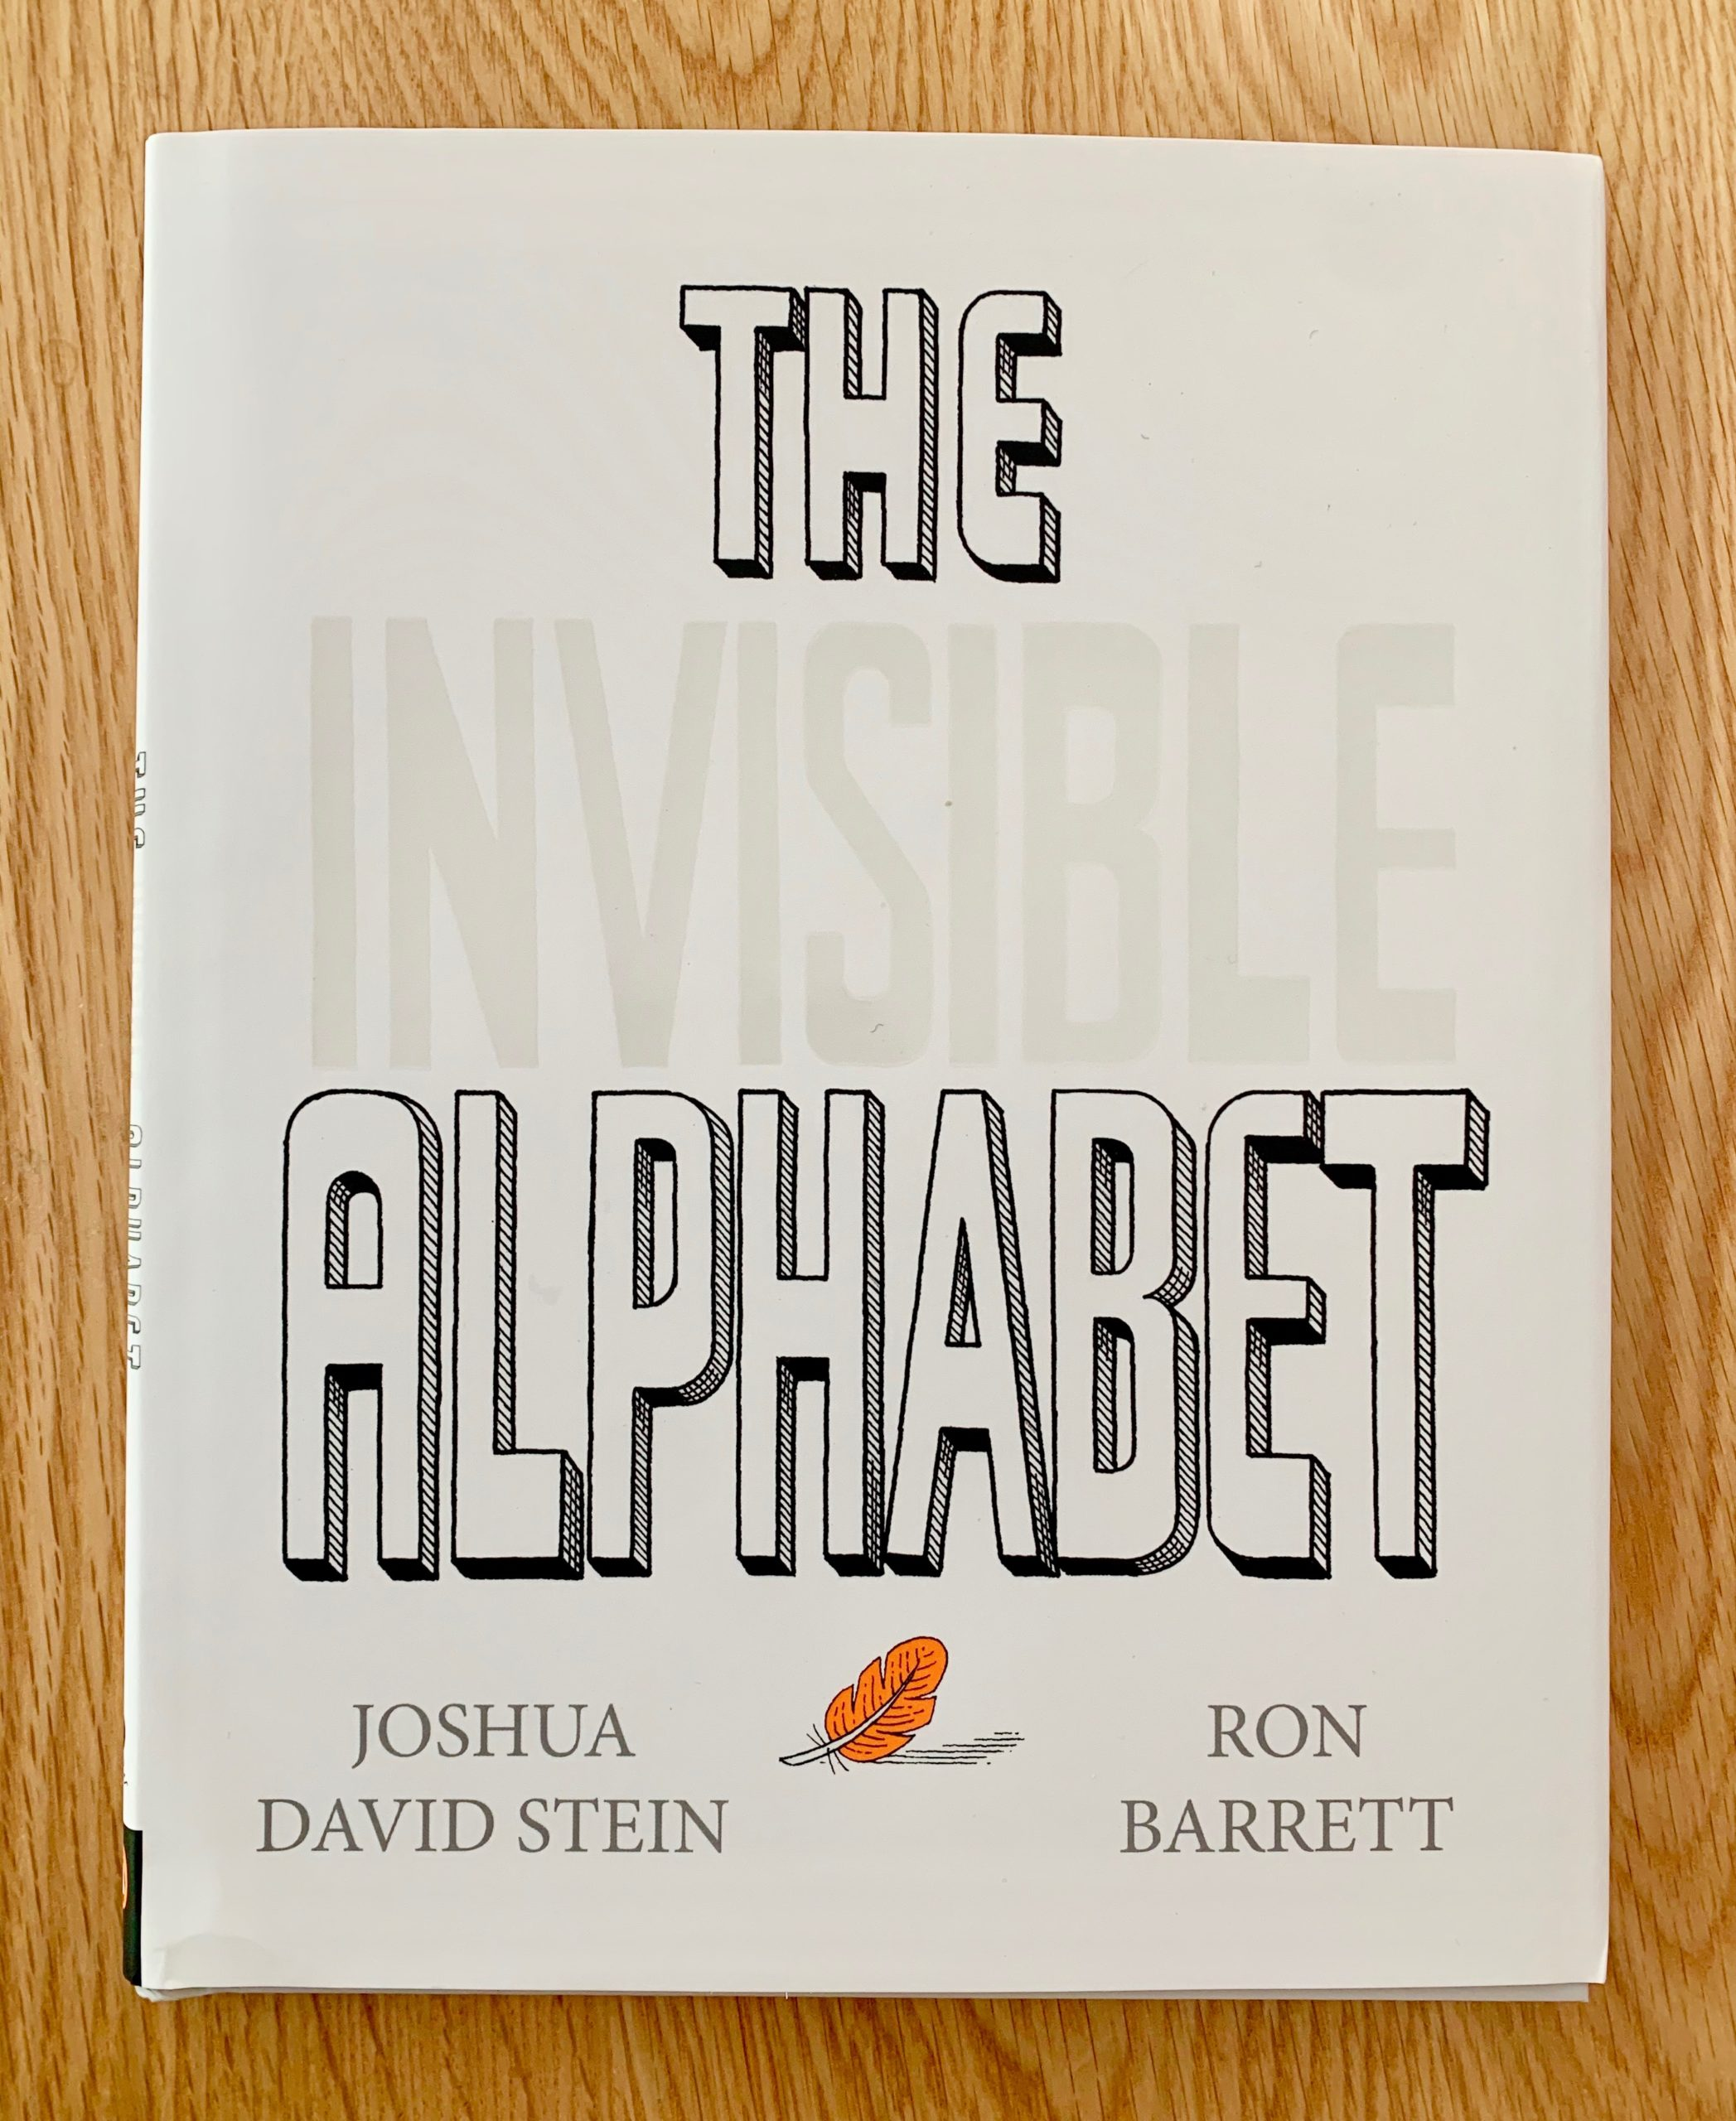 the invisible alphabet by Joshua David Stein